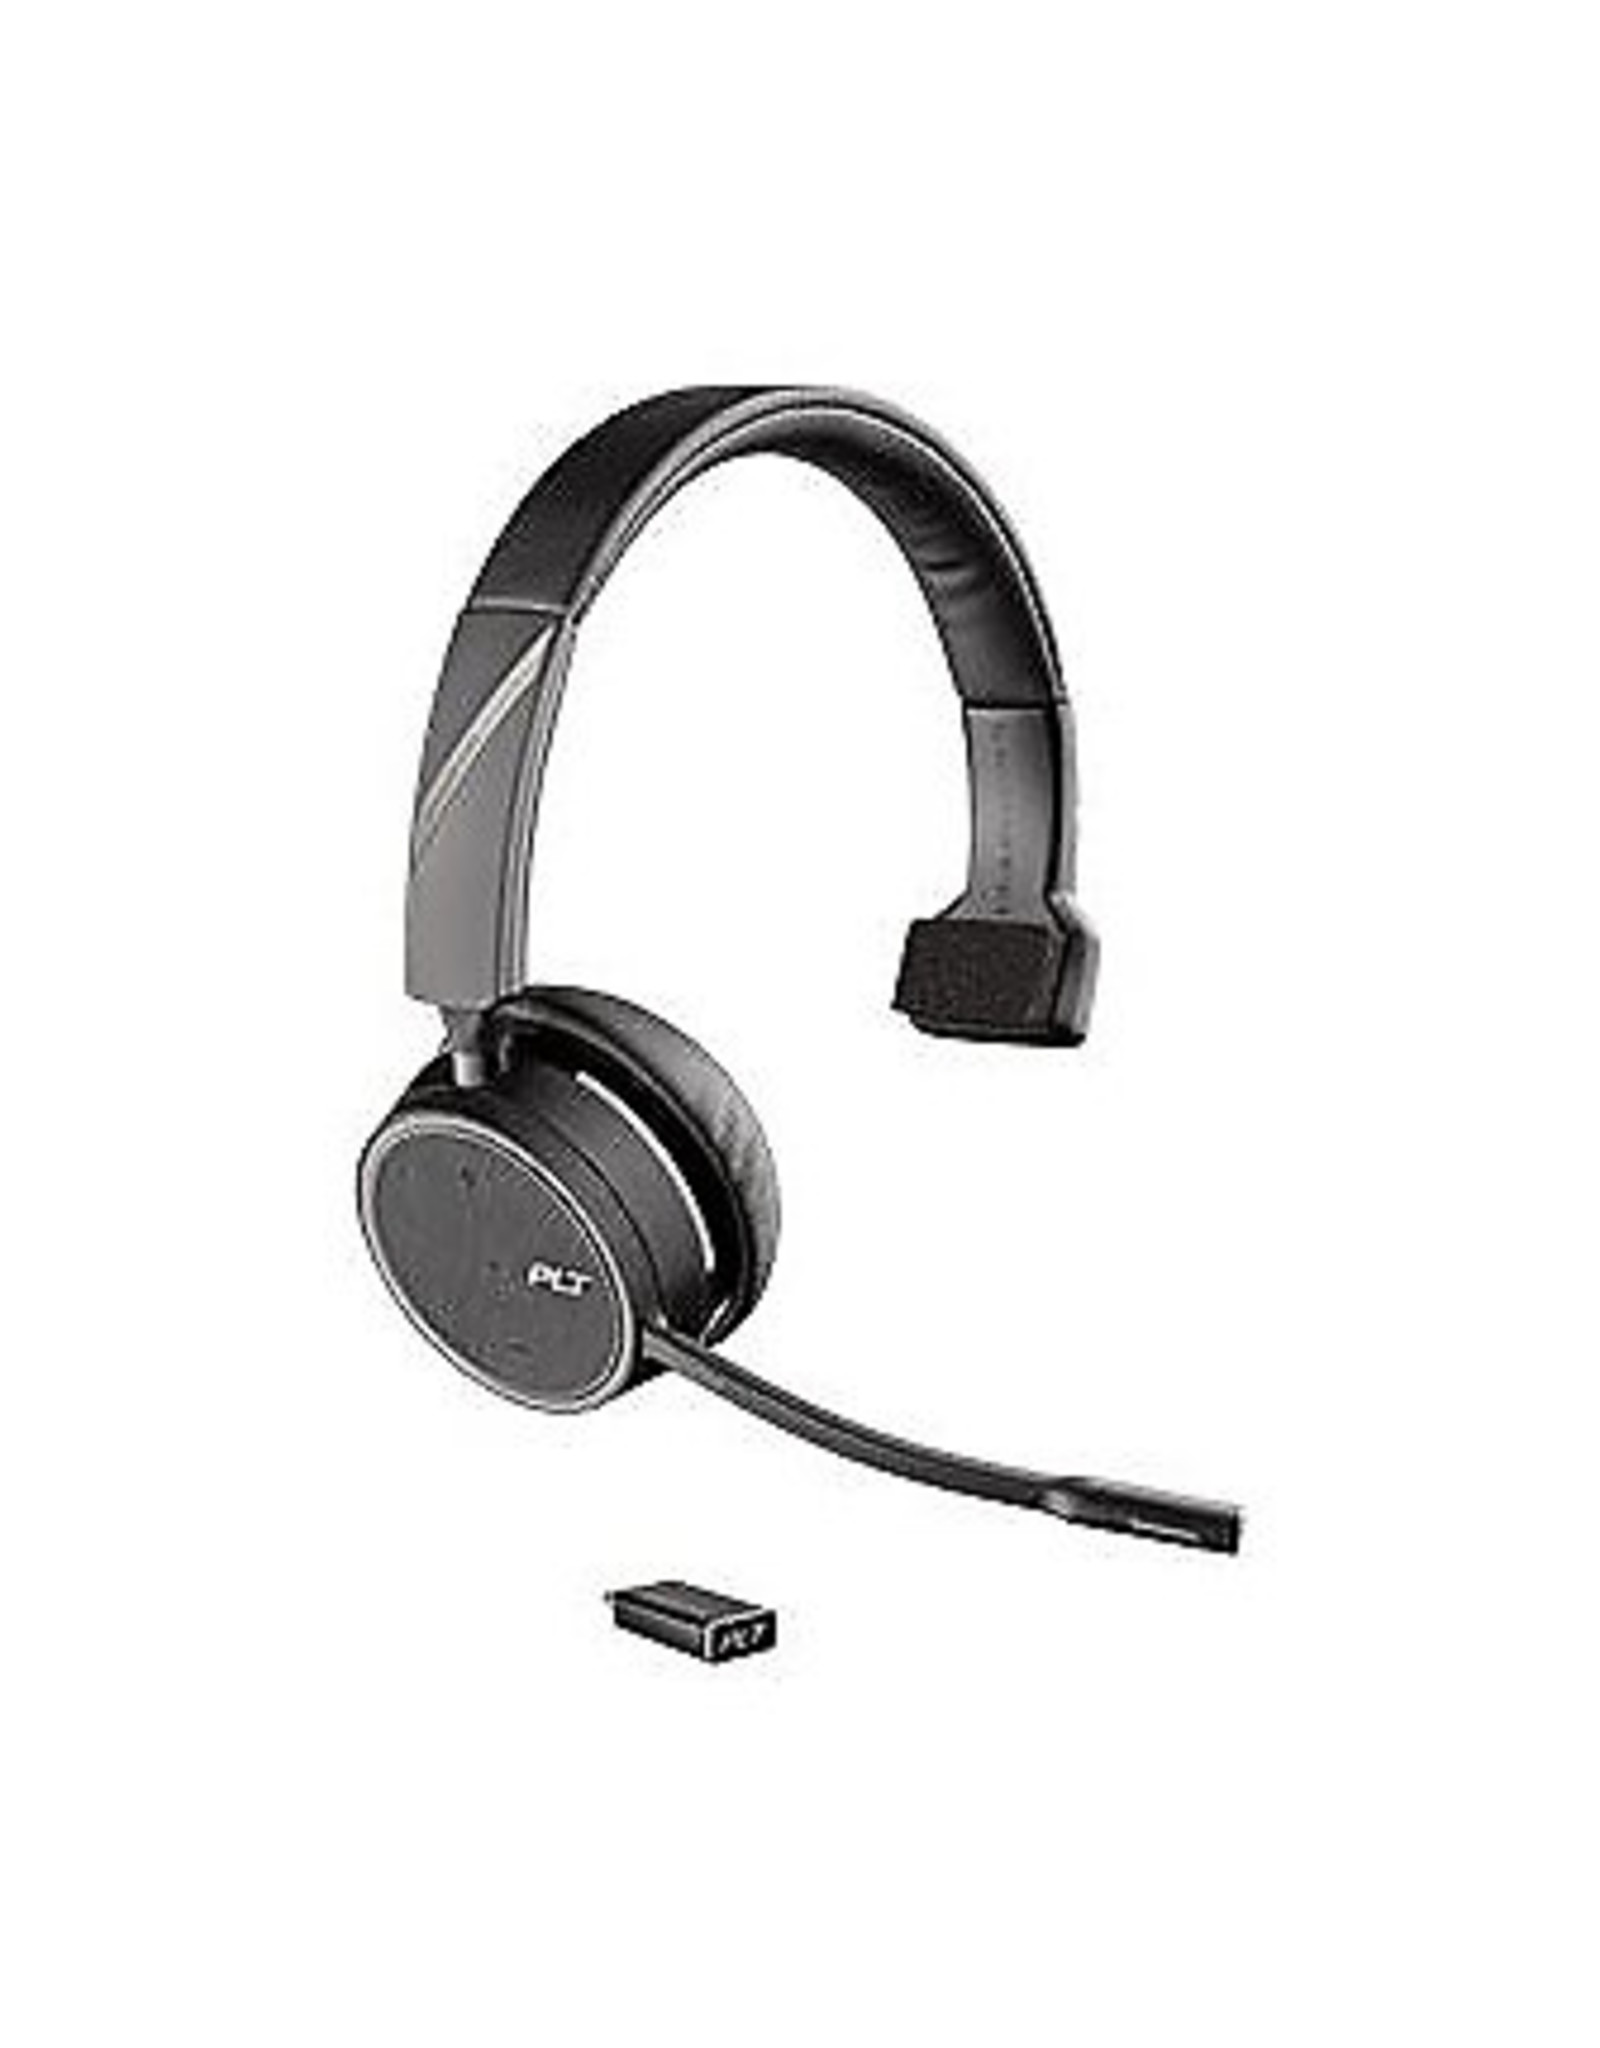 PLANTRONICS PLANTRONICS VOYAGER B4210 1-EAR USB-C WIRELESS HEADSET